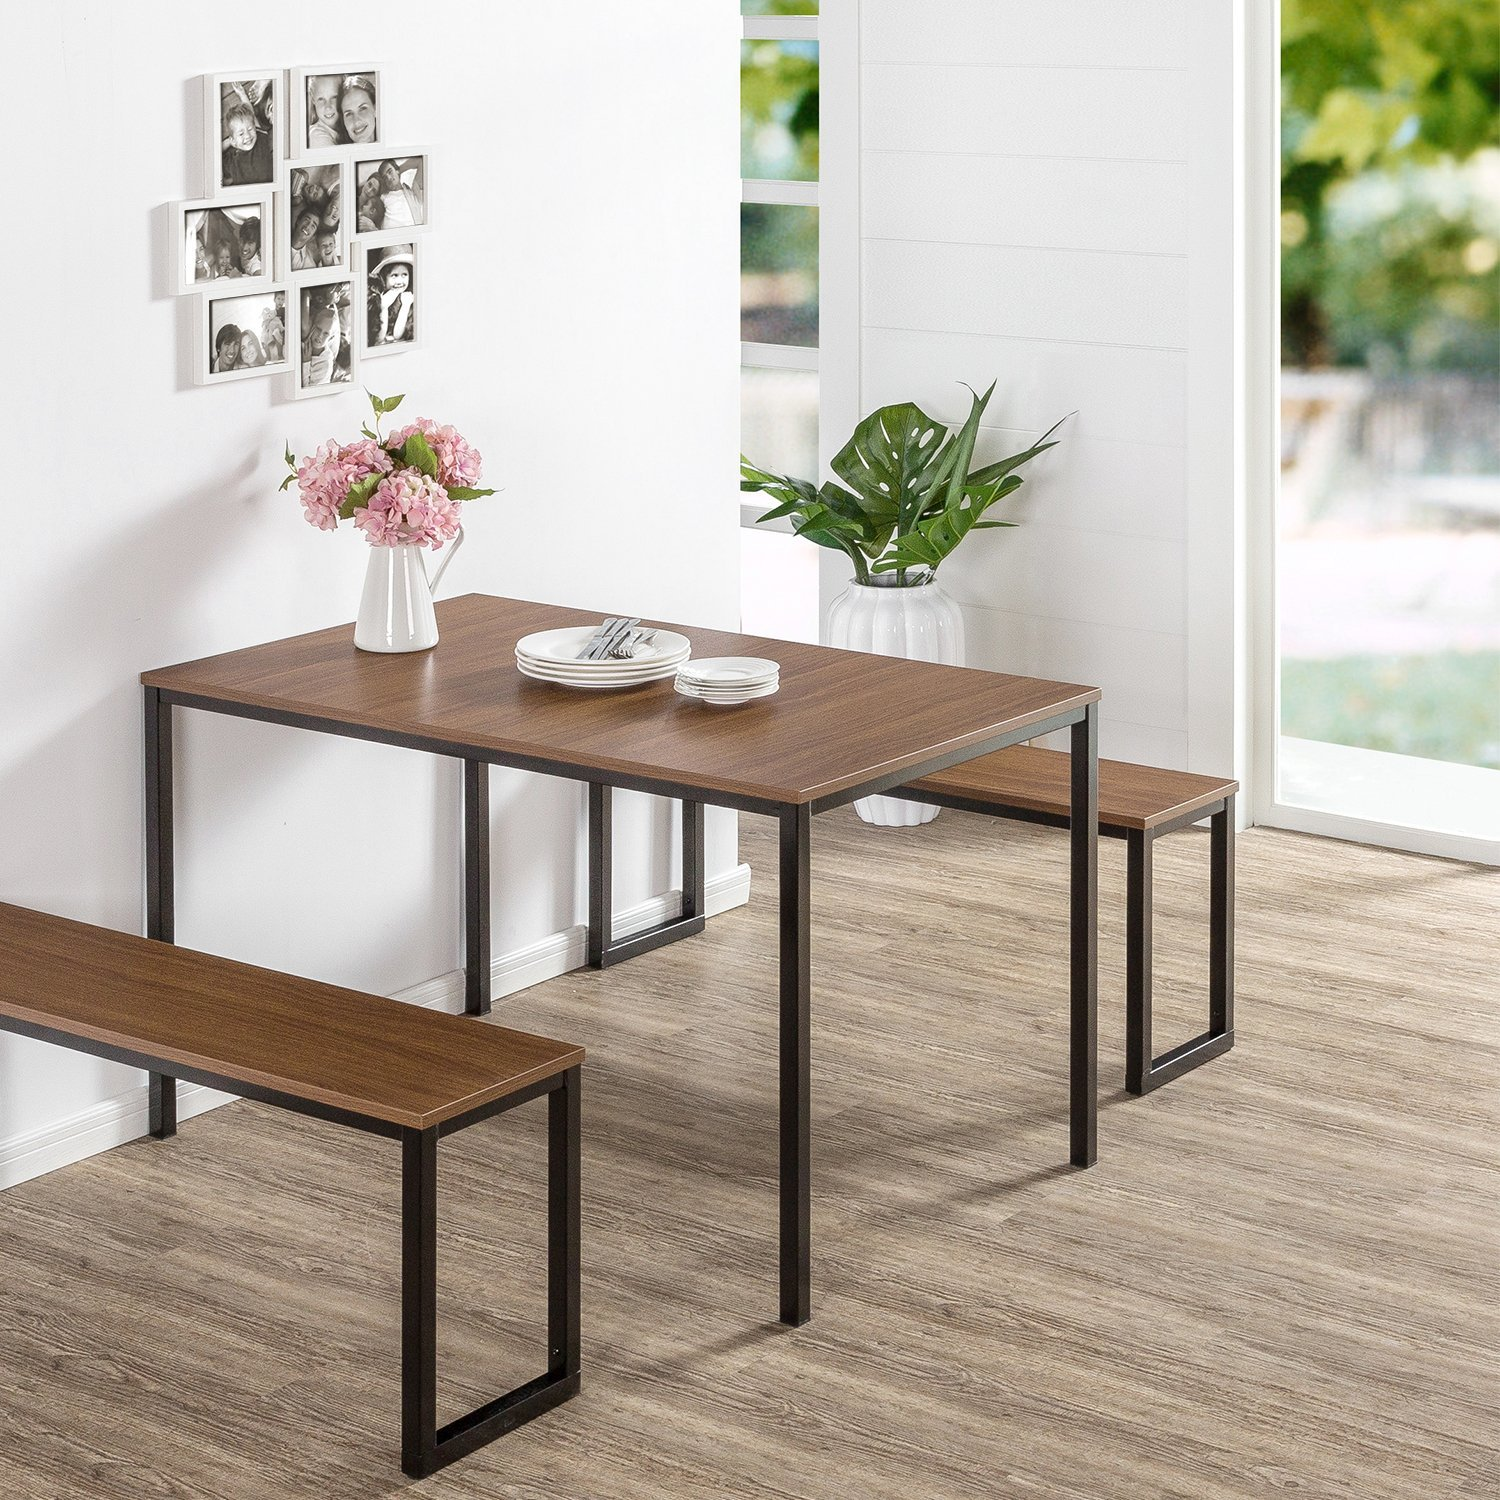 [Review] Zinus Modern Studio Collection Soho Dining Table Set